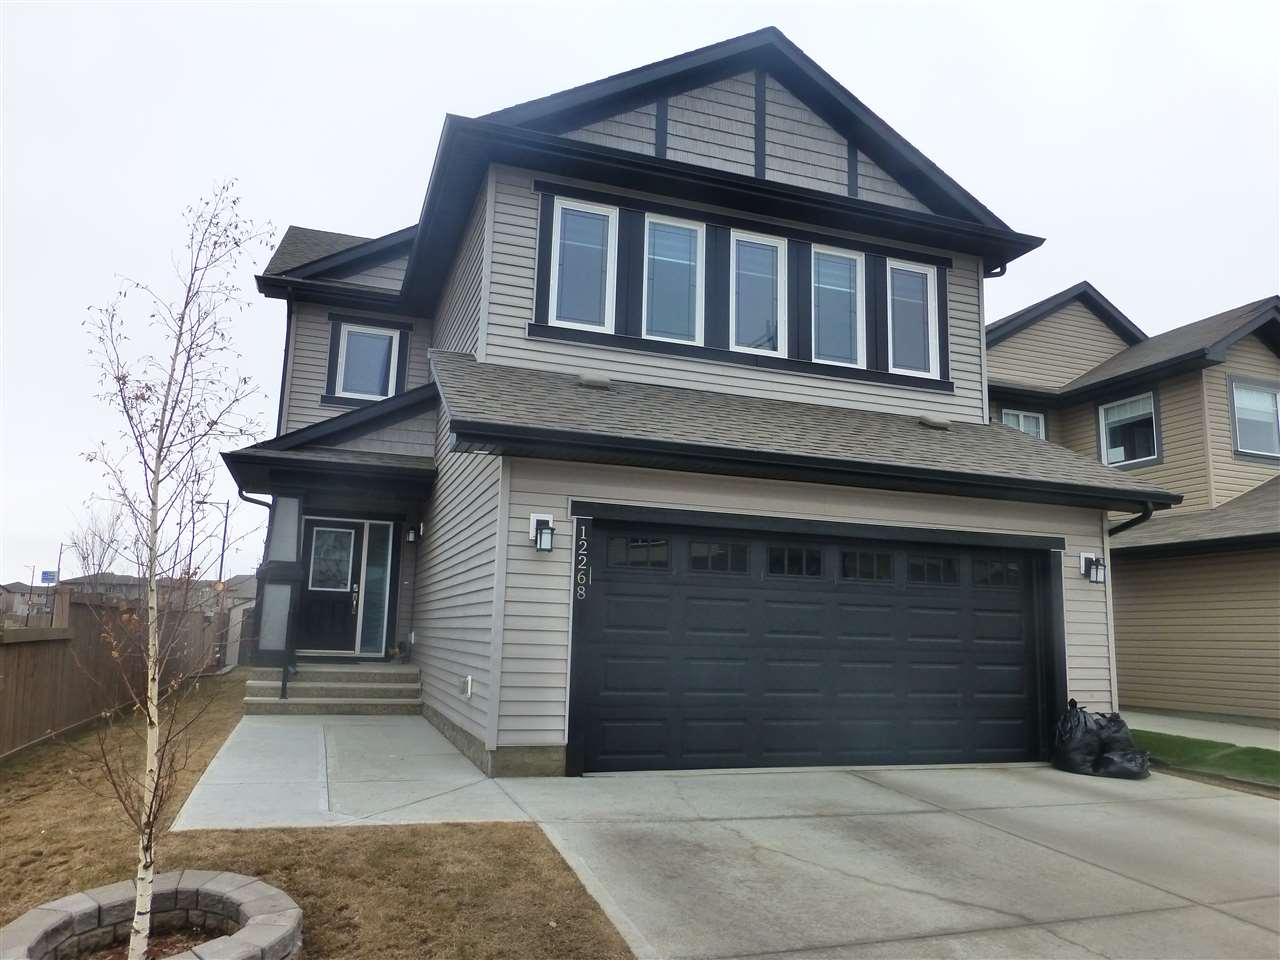 Be impressed with this bright and elegant fully finished home with a gorgeous lake view. Upon entering the home you will be greeted with a spacious foyer with sky high ceilings and plenty of windows that flood the house with natural light. This open concept home features a large living room with gas fireplace, the beautiful kitchen with a centre island, plenty of cabinets and counter space, SS appliances, granite countertops and a large pantry. Upstairs you will find a massive bonus room, 3 large bedrooms, the master complete with a walk in closet and a beautiful ensuite. The fully finished basement was completed by the builder offering a family room with gas fireplace, 4th bedroom, 4 pc bathroom and a storage room. The yard boasts a massive deck with incredible lake views. The garage is oversized with a drain. close to schools, transportation and easy access to the Henday.